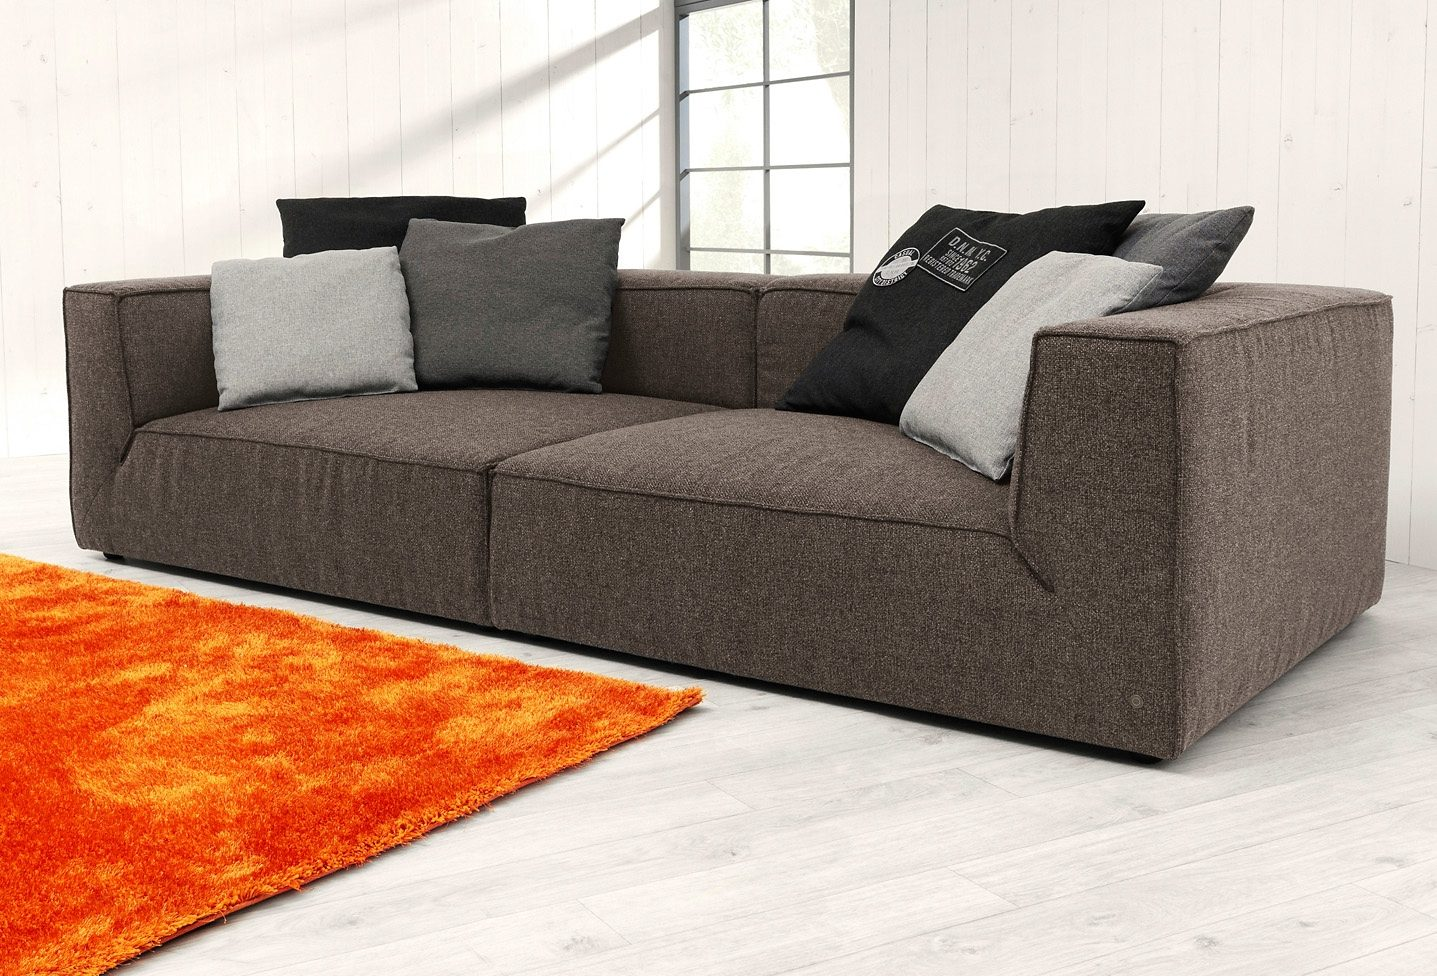 Hocker Beige Tom Tailor Big-sofa »big Cube«, Wahlweise Mit